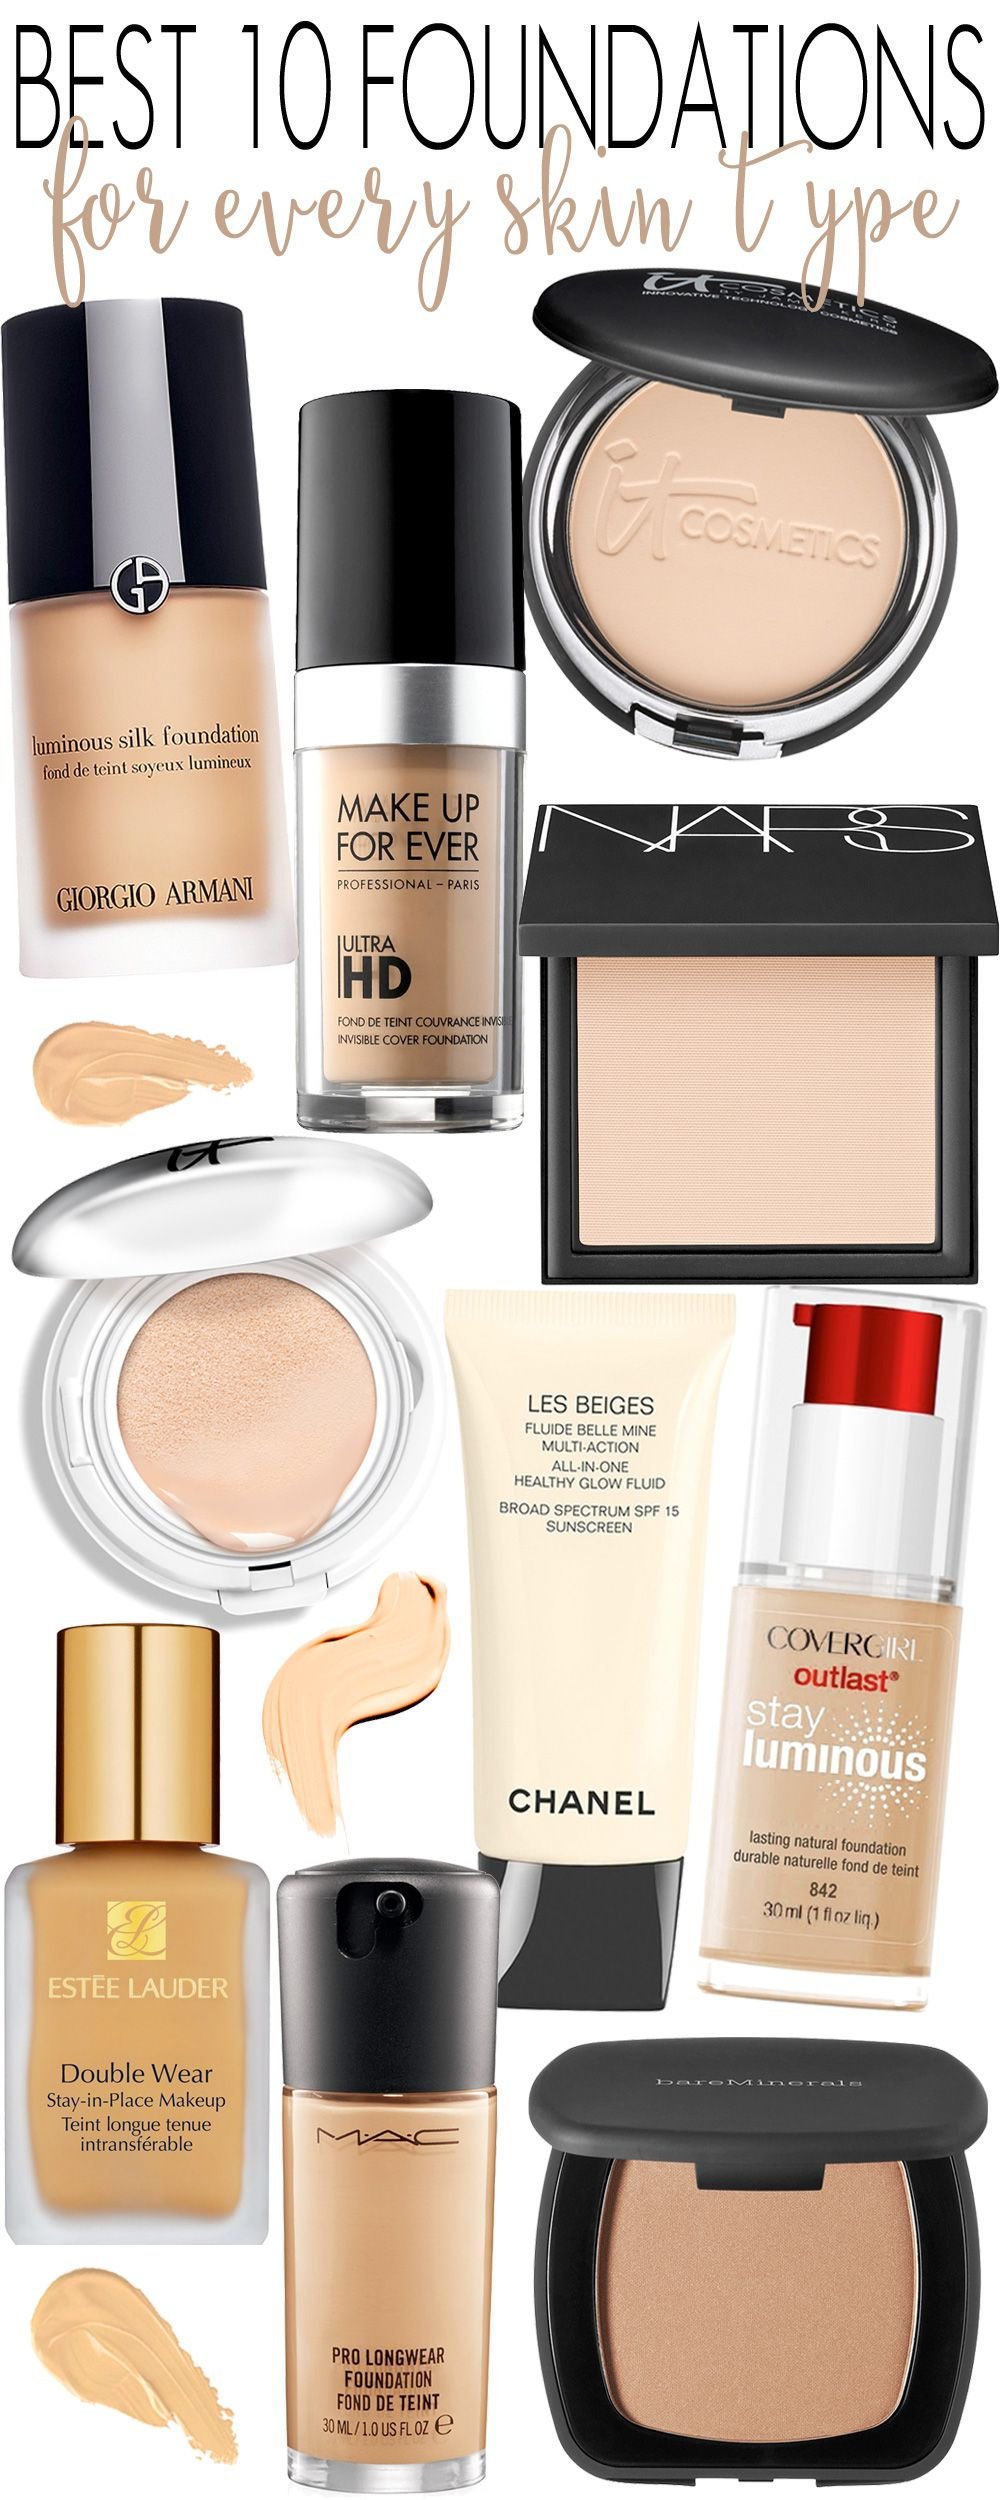 Best 10 Foundations for Every Skin Type. Best makeup